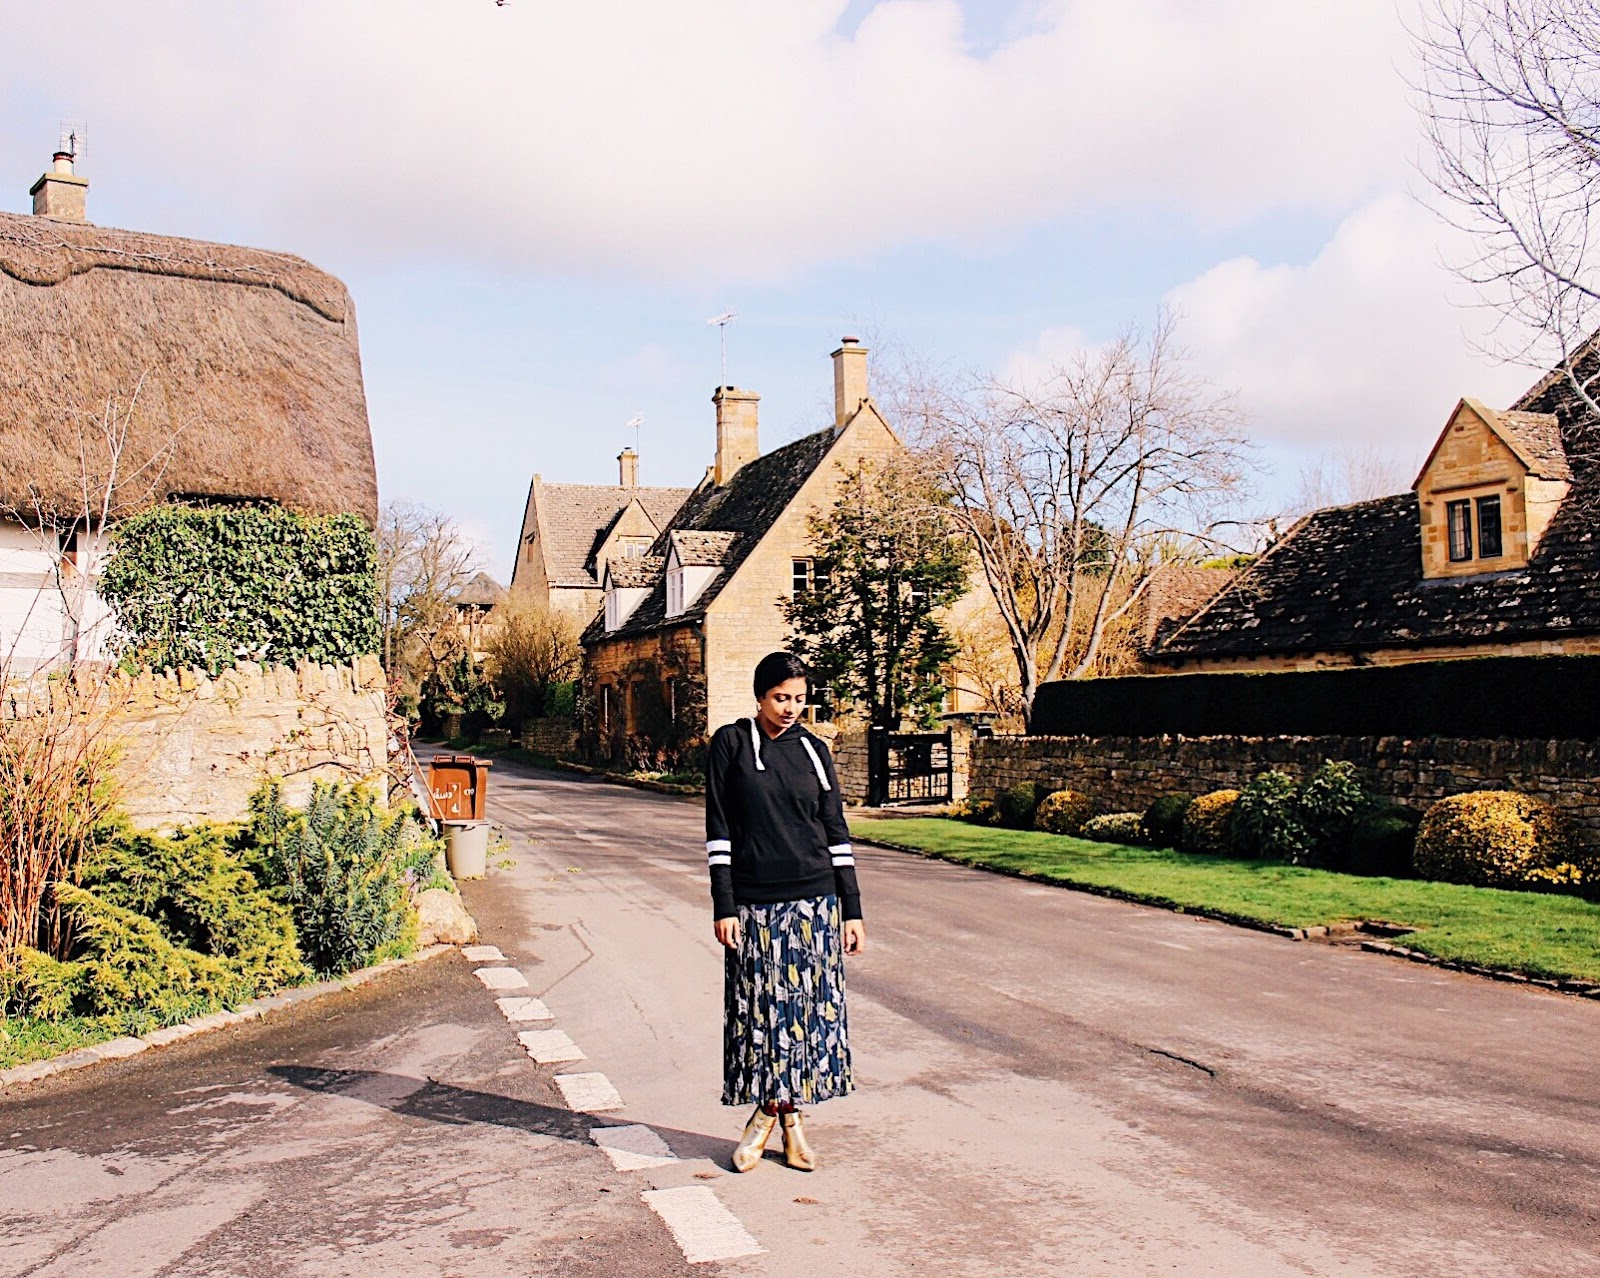 cotswolds, english countryside, what to wear to cotswolds, wear in cotswolds, wear in countryside, tulip print, matching set, coord skirt, matching skirt set, ss17, east, east review, east clothing, east uk, east matching set, jacket and skirt set, effortless, chic outfit, wear in spring in england, england spring outfit, wear in the uk, wear in the uk in spring, feminine outfit, effortless feminine chic, european style, wear in europe, english, british, top indian blog, indian travel blog, indian luxury blog, indian fashion blogger, delhi blogger, delhi travel blogger, uk blog, london style, shades of blue, spring florals, spring outfit 2017, elegant spring outfit